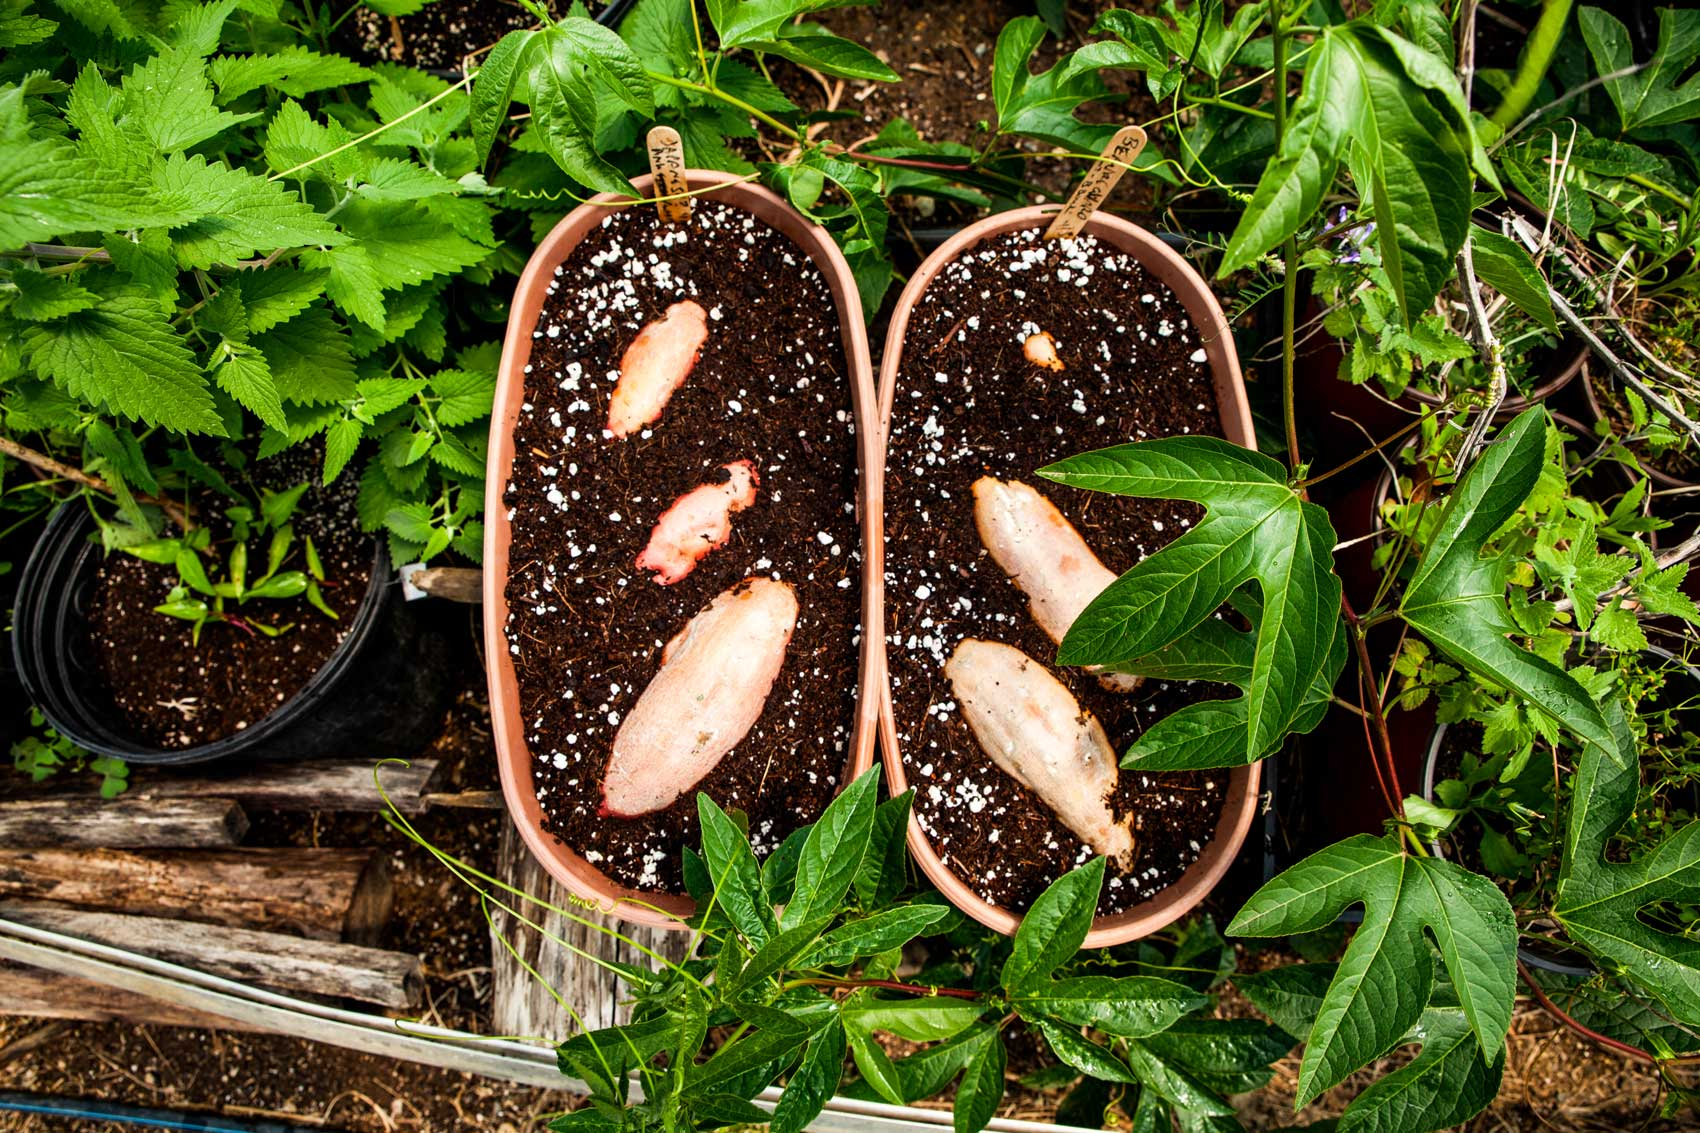 Sweet potatoes growing out of potted soil.